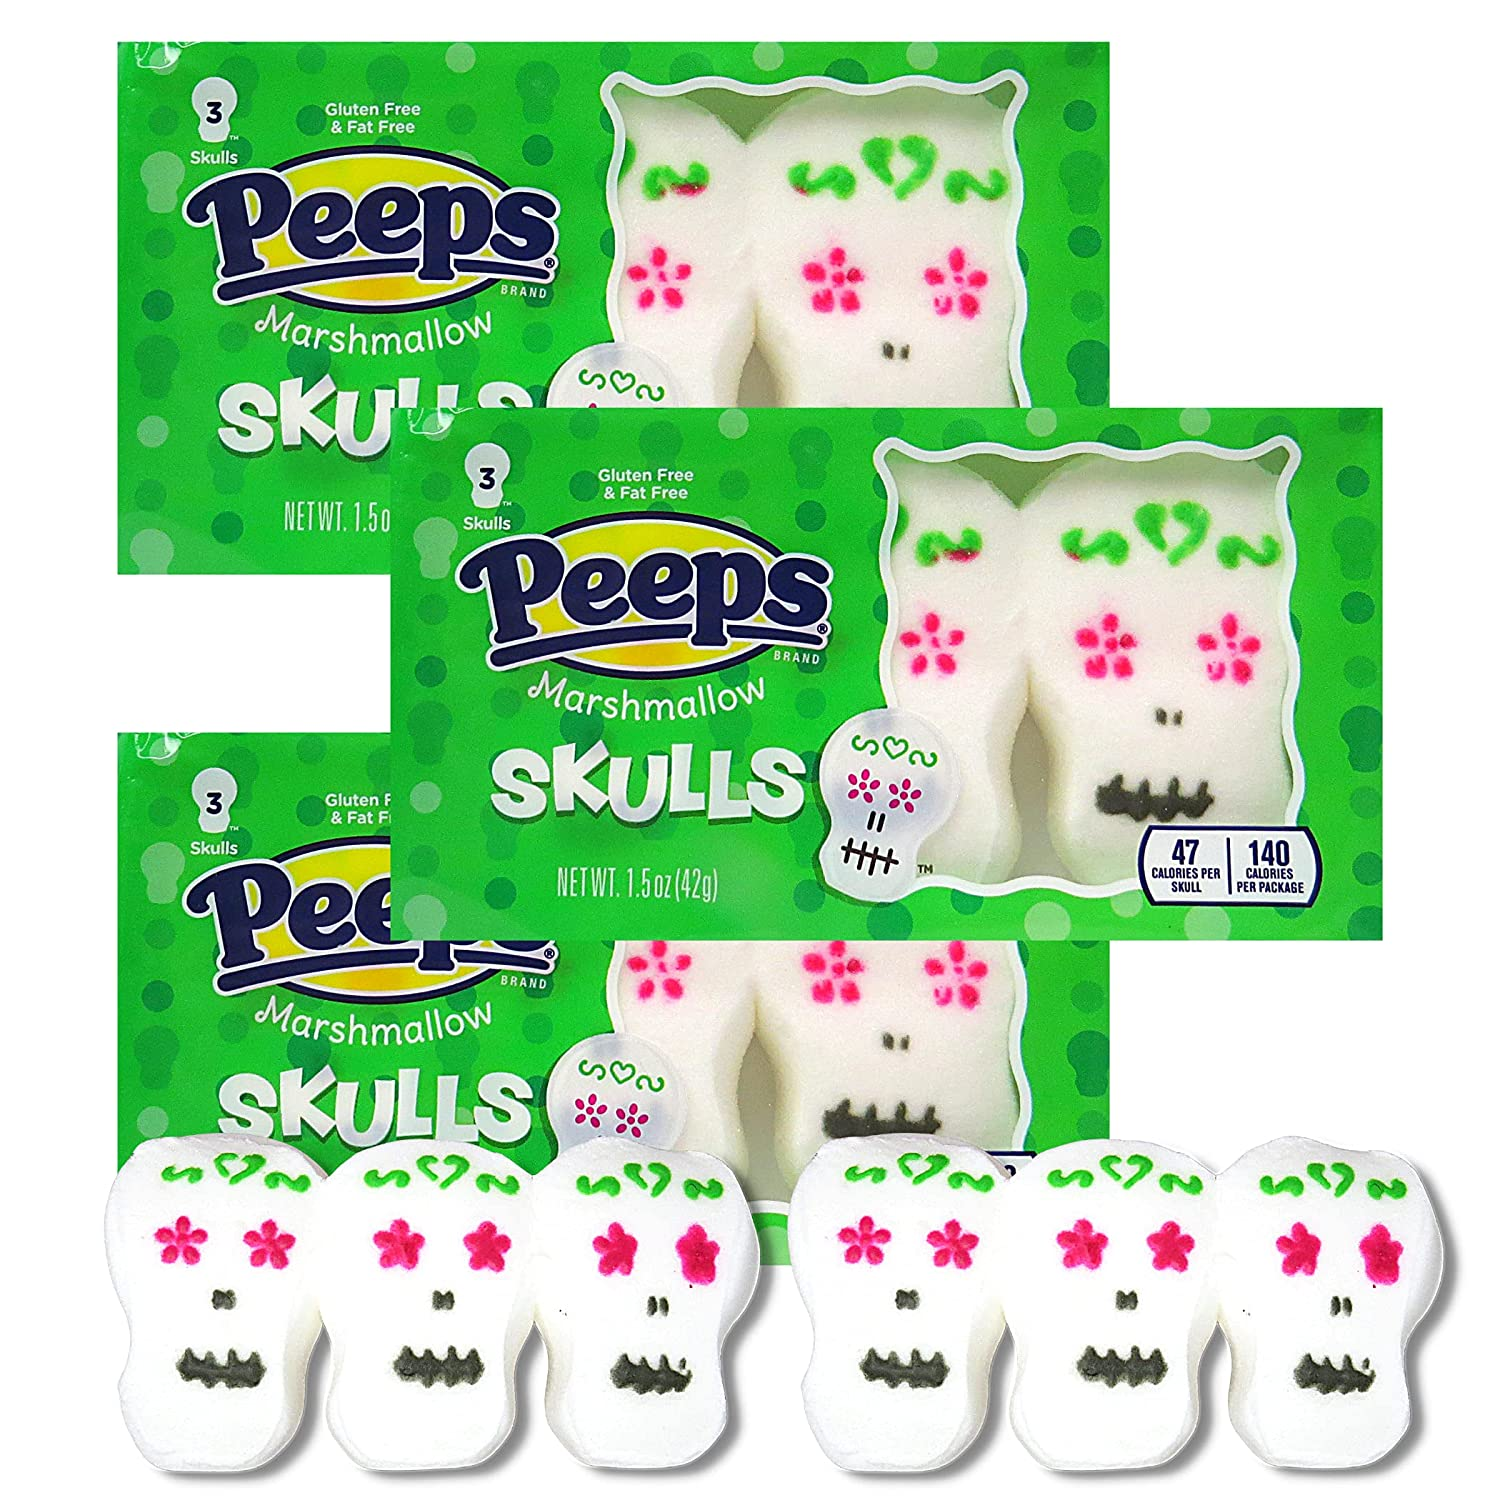 Day of the Dead Sugar Skull Halloween Peeps Marshmallow Candy, Peep Marshmallows Bulk Party Favors, Cupcake, Cake, Brownie or Dessert Topper Decorations, Pack of 3, 3 Skulls in Each